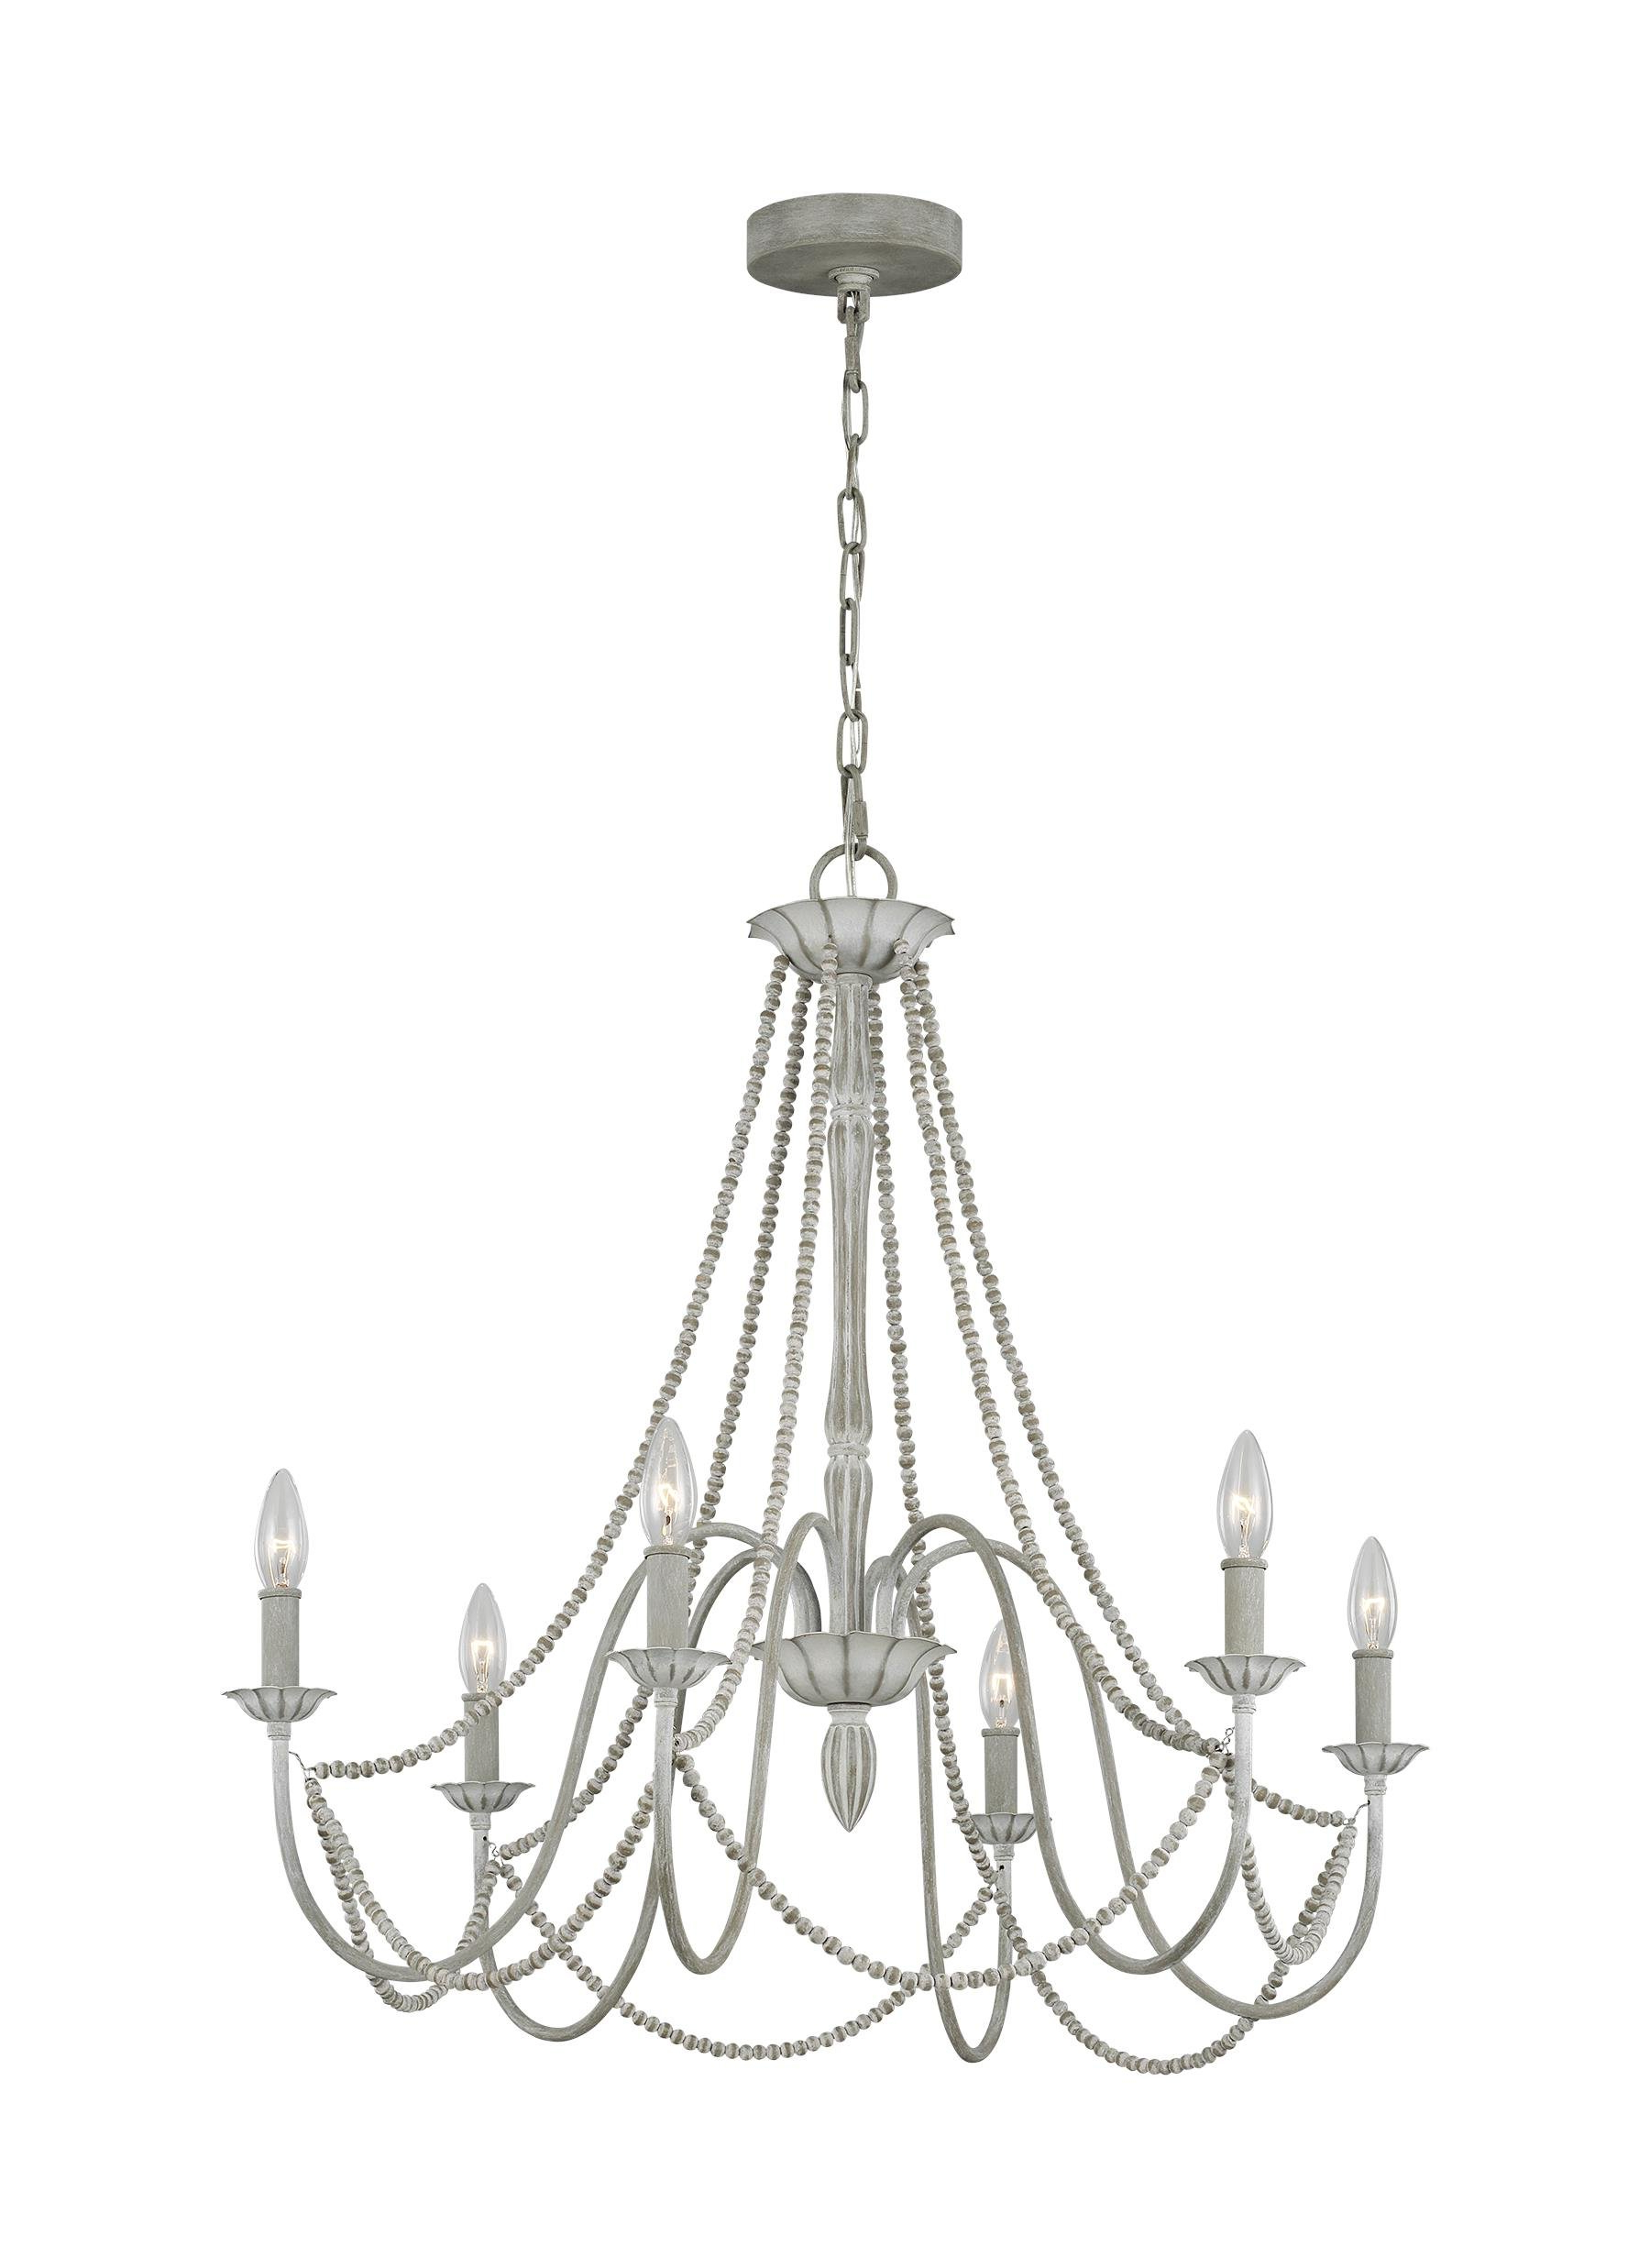 Fashionable Caufield 6 Light Candle Style Chandelier Regarding Diaz 6 Light Candle Style Chandeliers (View 14 of 25)